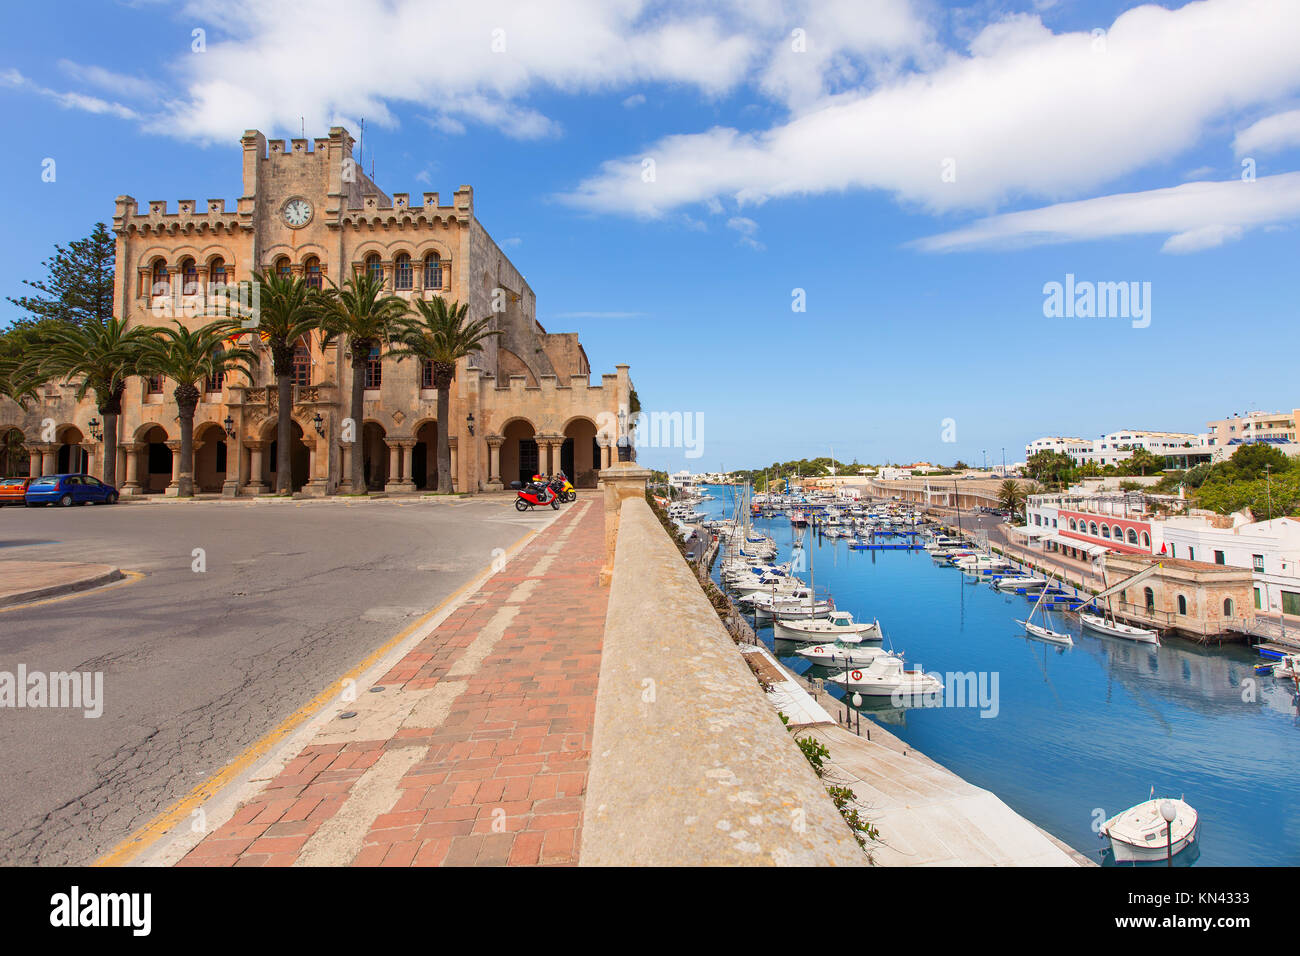 Ciutadella Menorca city Town Hall and Port in Ciudadela at Balearic islands. - Stock Image